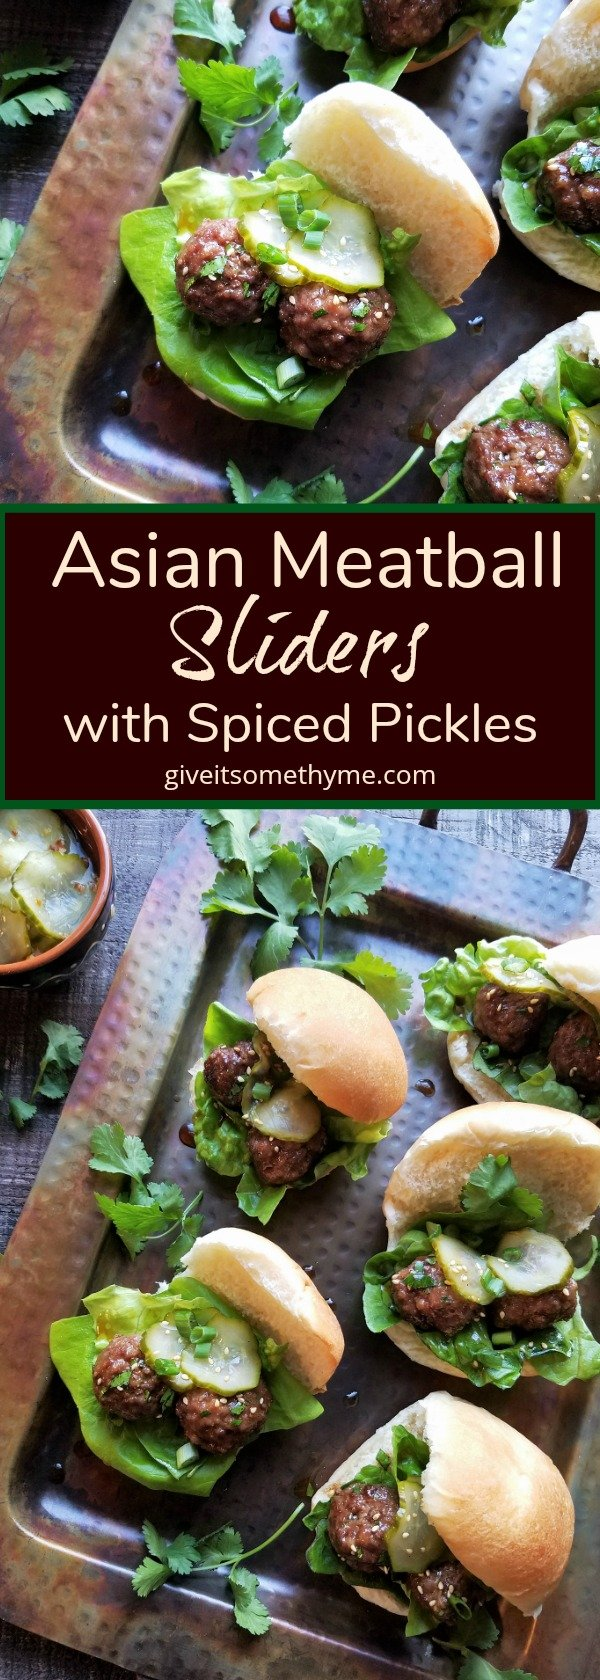 Asian Meatball Sliders with Spiced Pickles - Give it Some Thyme